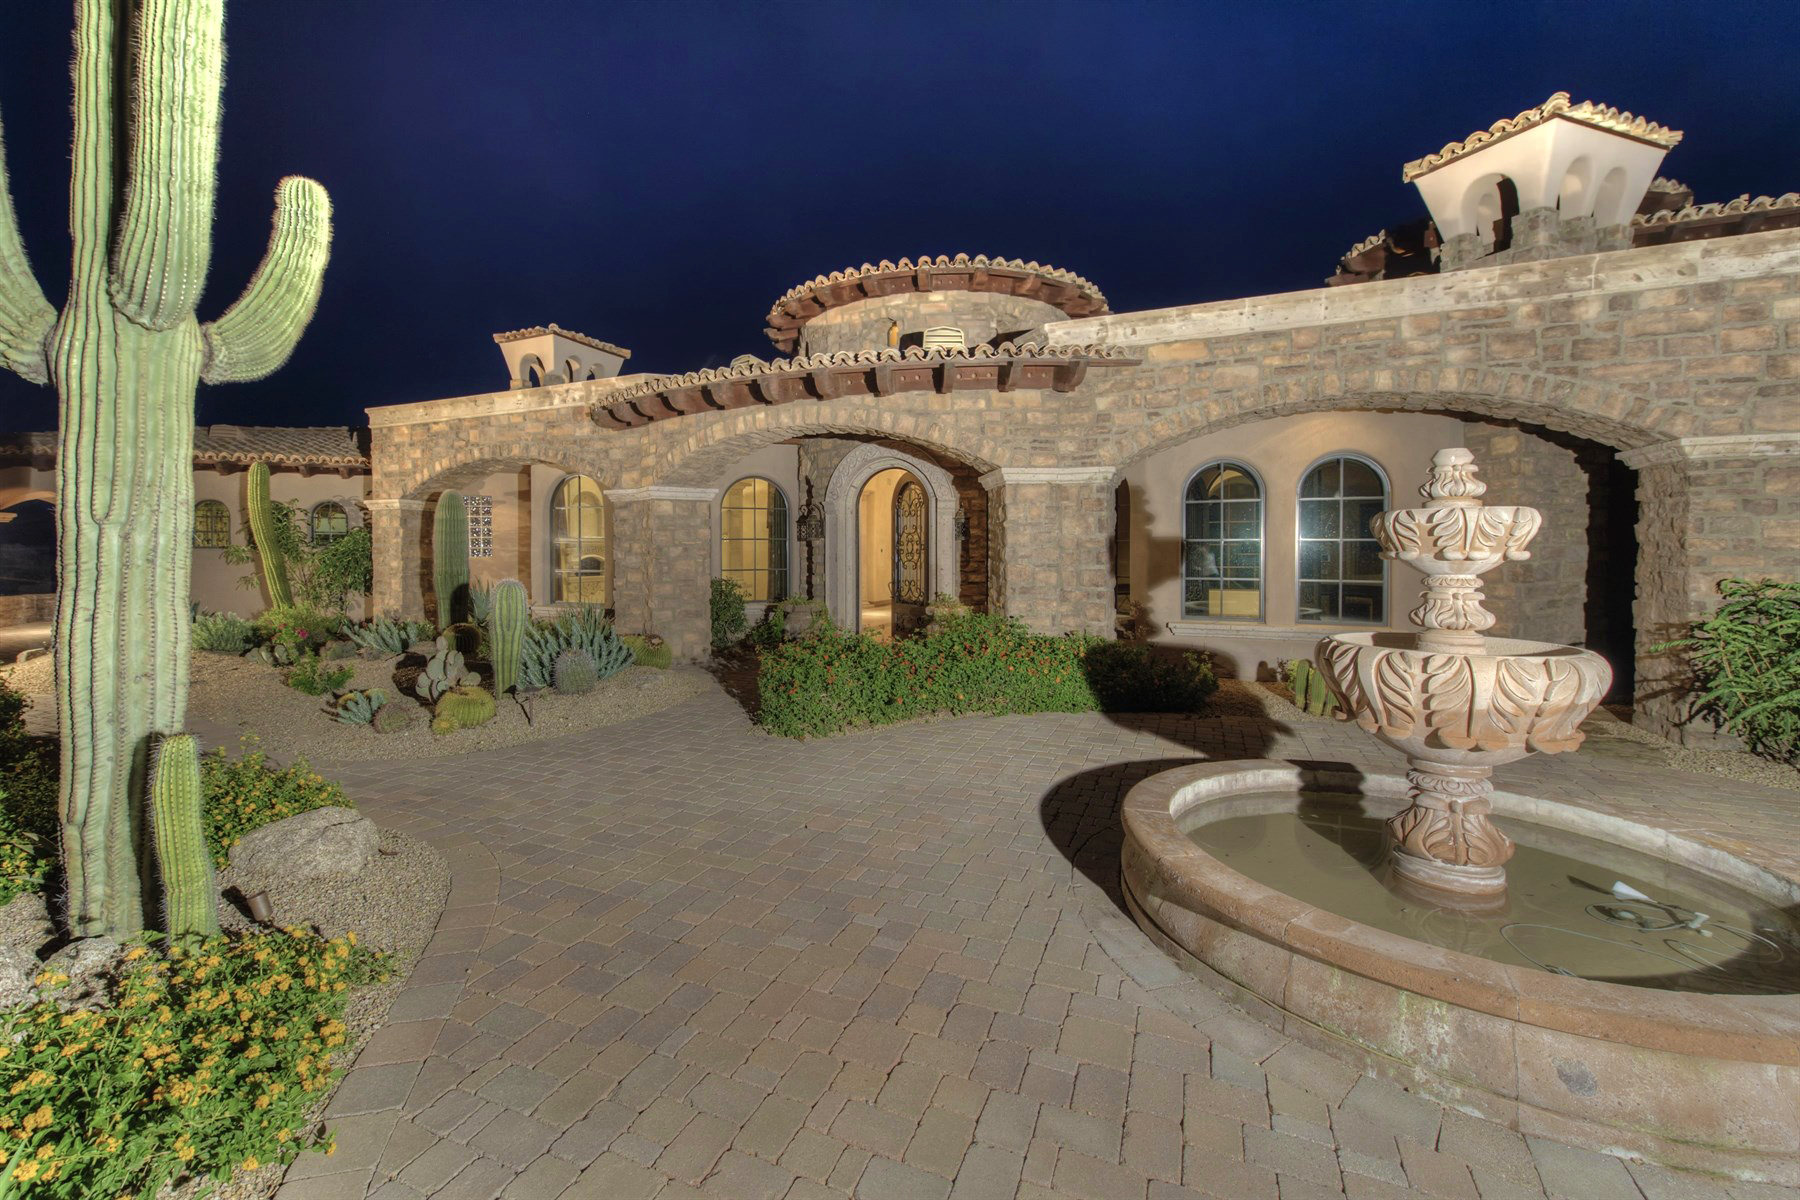 独户住宅 为 销售 在 Stunning Private Estate On Nearly 3 Acres In Guard-Gated Whisper Rock Estates 8613 E Artisan Pass Scottsdale, 亚利桑那州 85266 美国